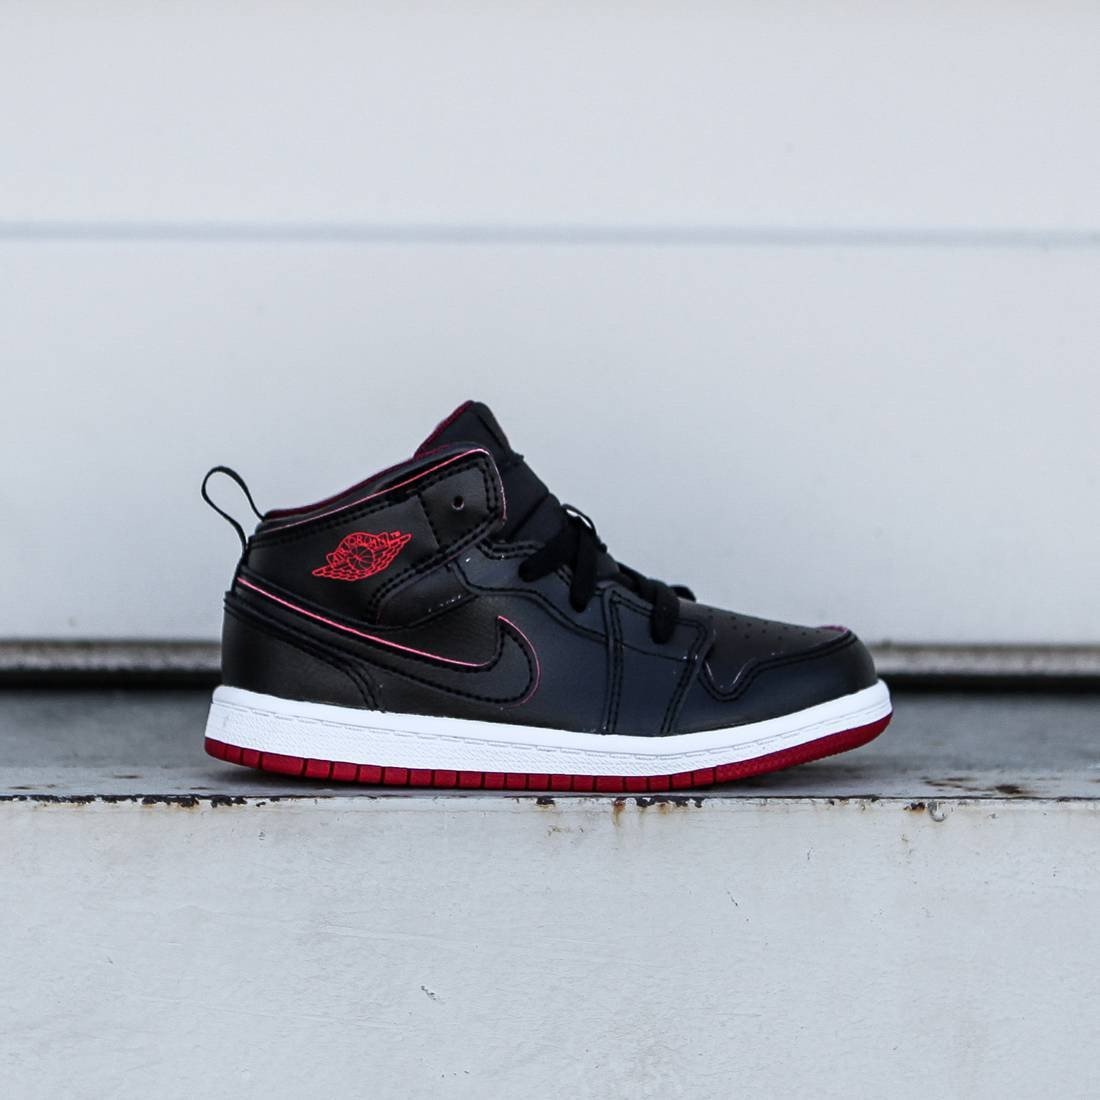 new arrivals a1412 a9d1a Air Jordan 1 Mid BT Toddlers (black / black-white / gym red)